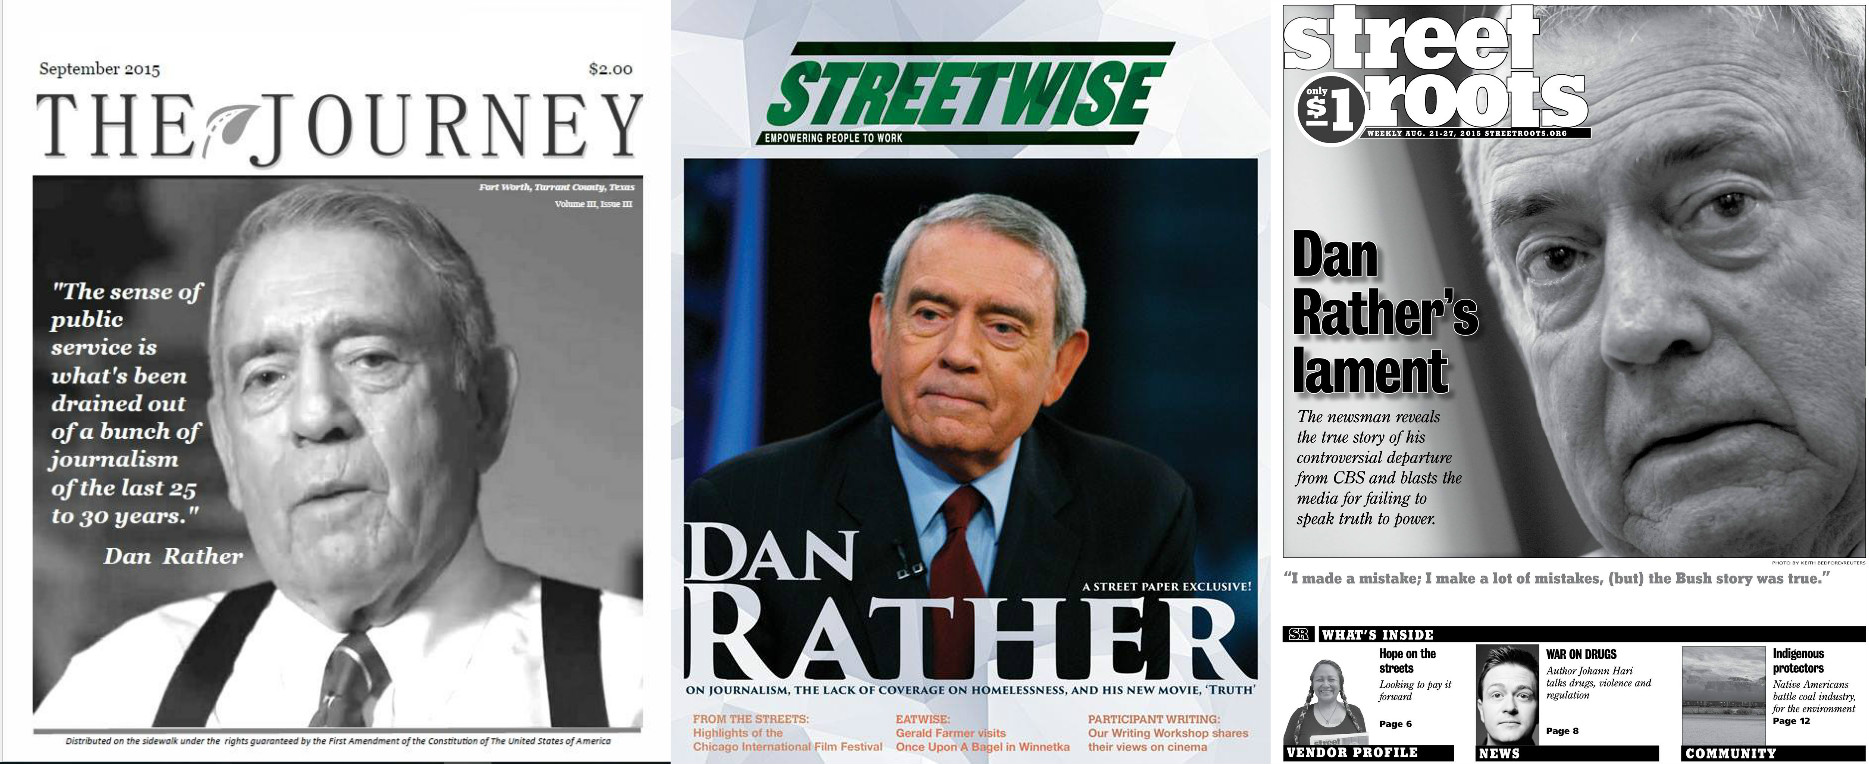 Dan Rather appears on three street paper covers